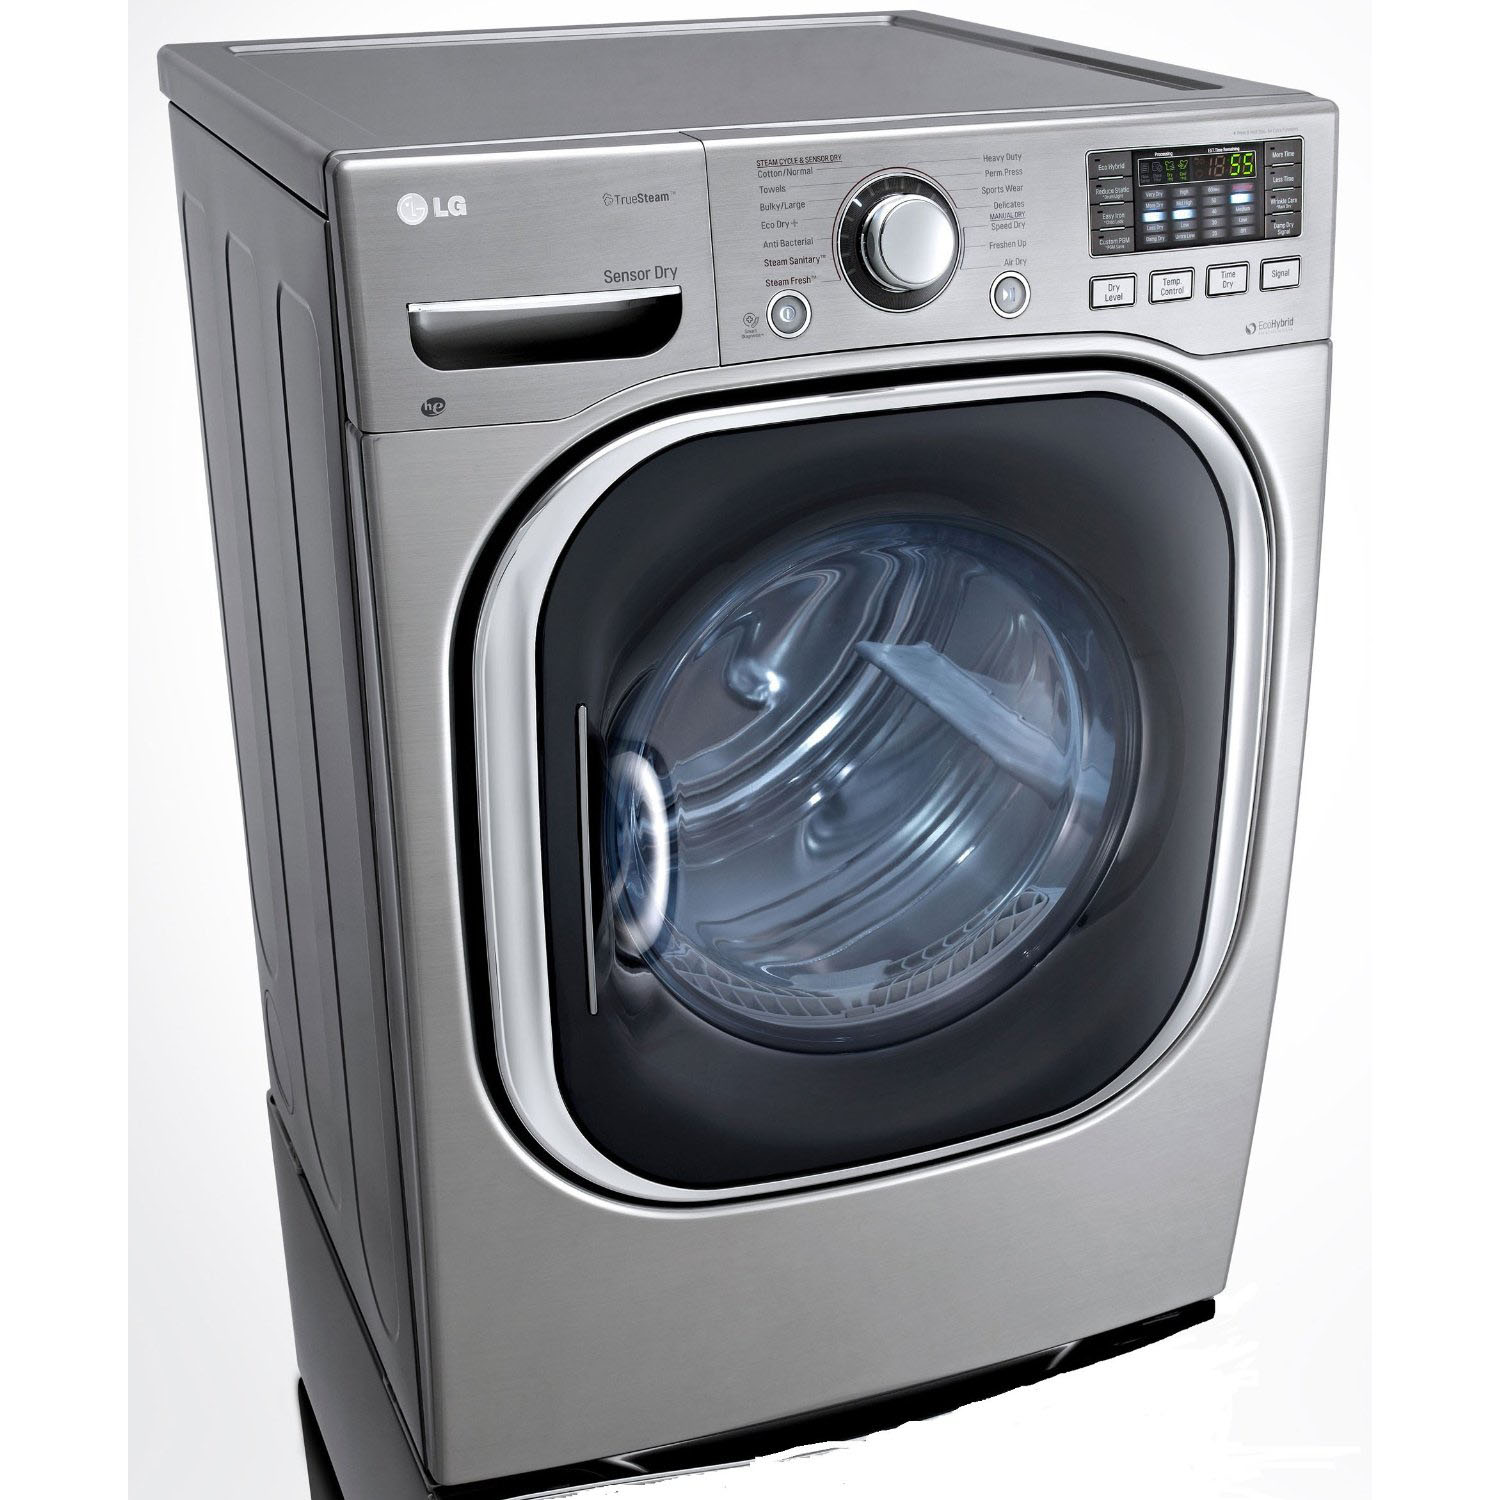 lg 7 3 cu ft ultra large capacity dryer with ecohybrid technology dlhx4072v review price and. Black Bedroom Furniture Sets. Home Design Ideas